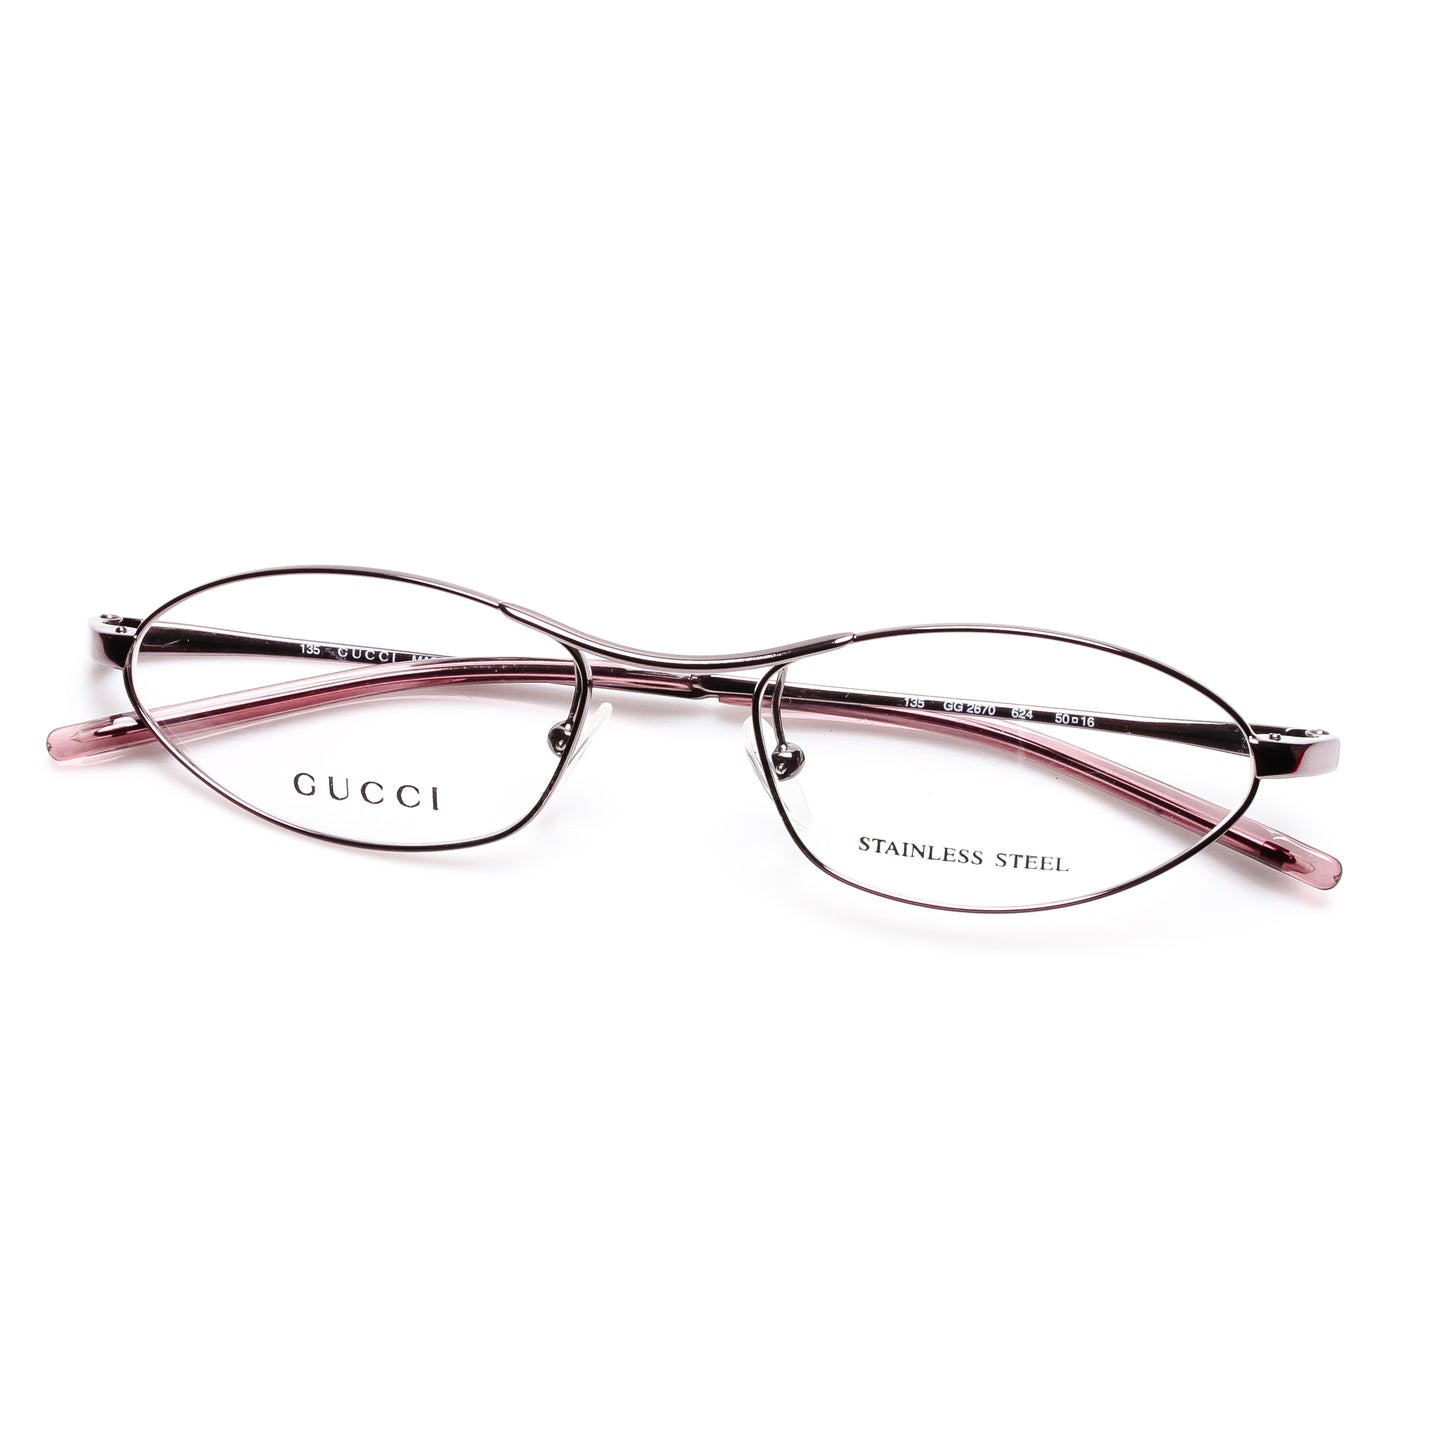 Gucci 2670 624, Gucci , glasses frames, eyeglasses online, eyeglass frames, mens glasses, womens glasses, buy glasses online, designer eyeglasses, vintage sunglasses, retro sunglasses, vintage glasses, sunglass, eyeglass, glasses, lens, vintage frames company, vf